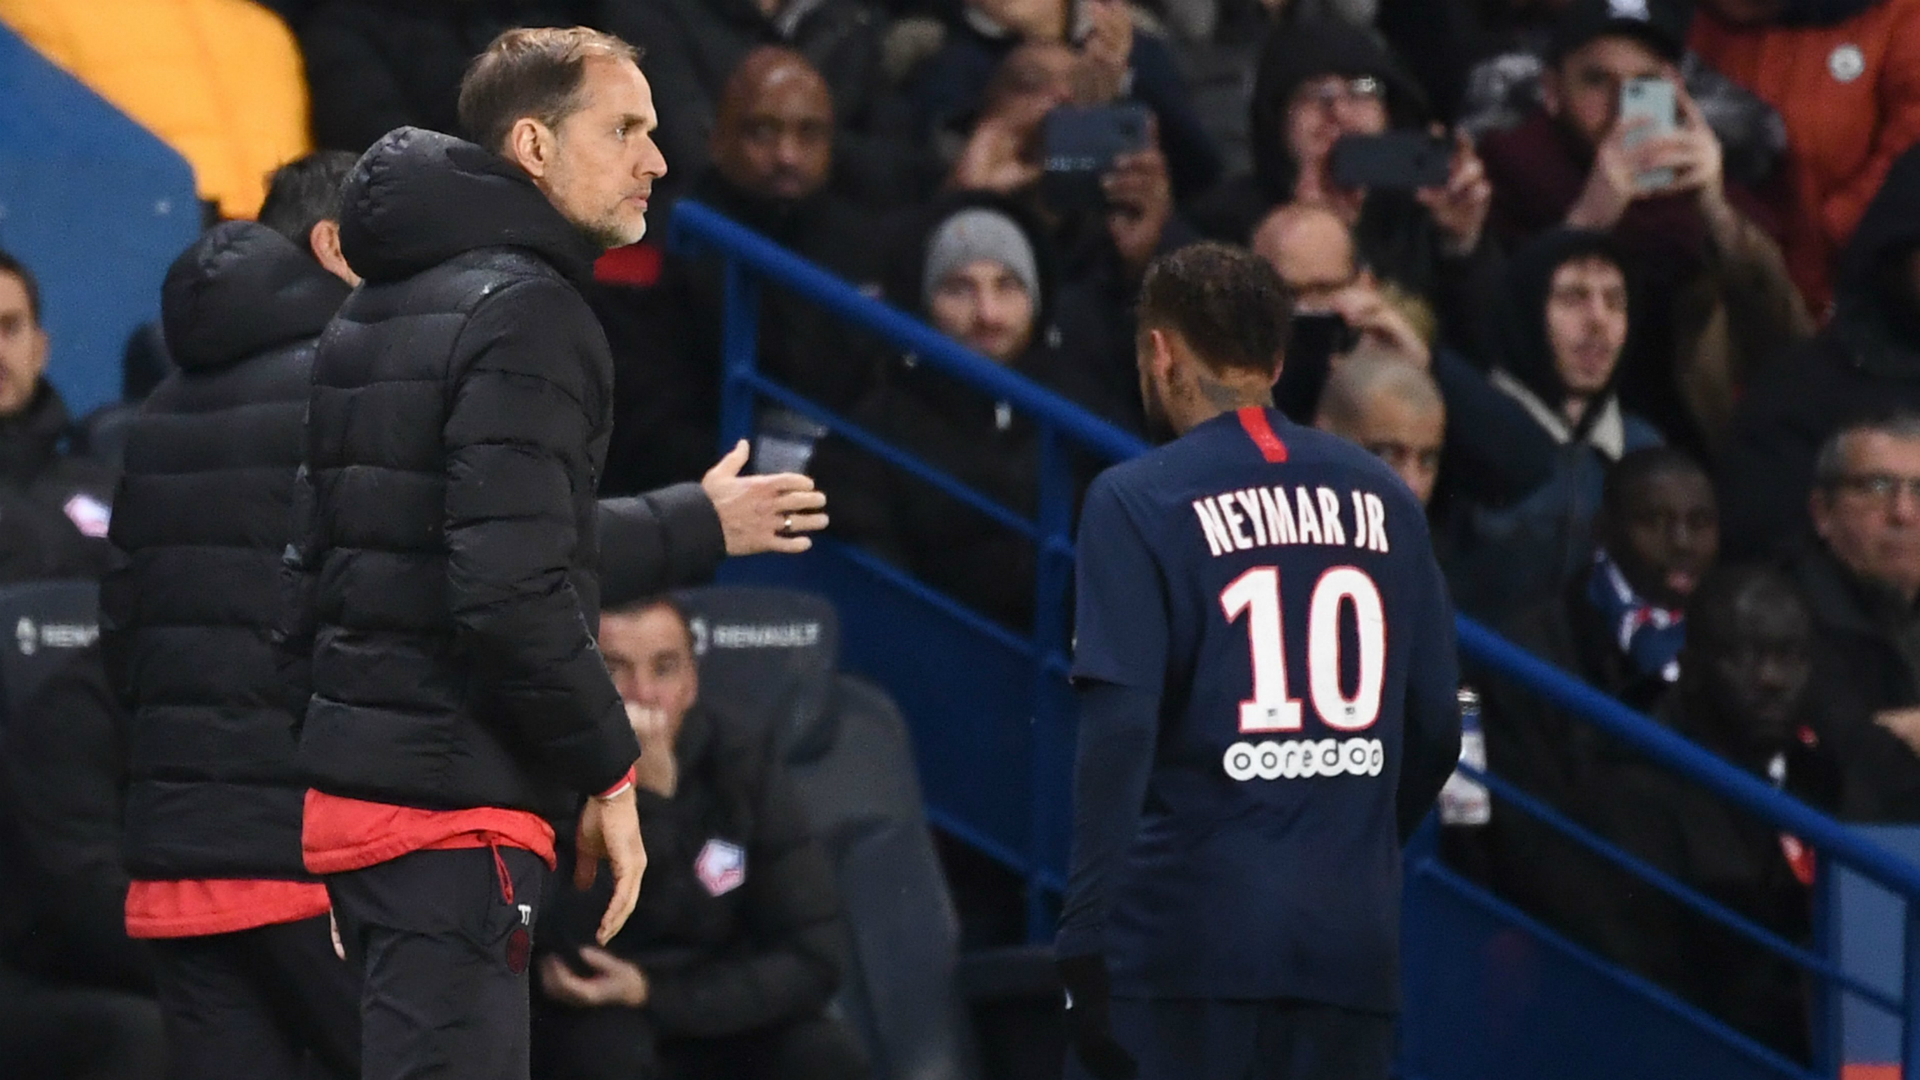 Neymar made his return for Paris Saint-Germain on Friday in a performance Thomas Tuchel conceded was below par.